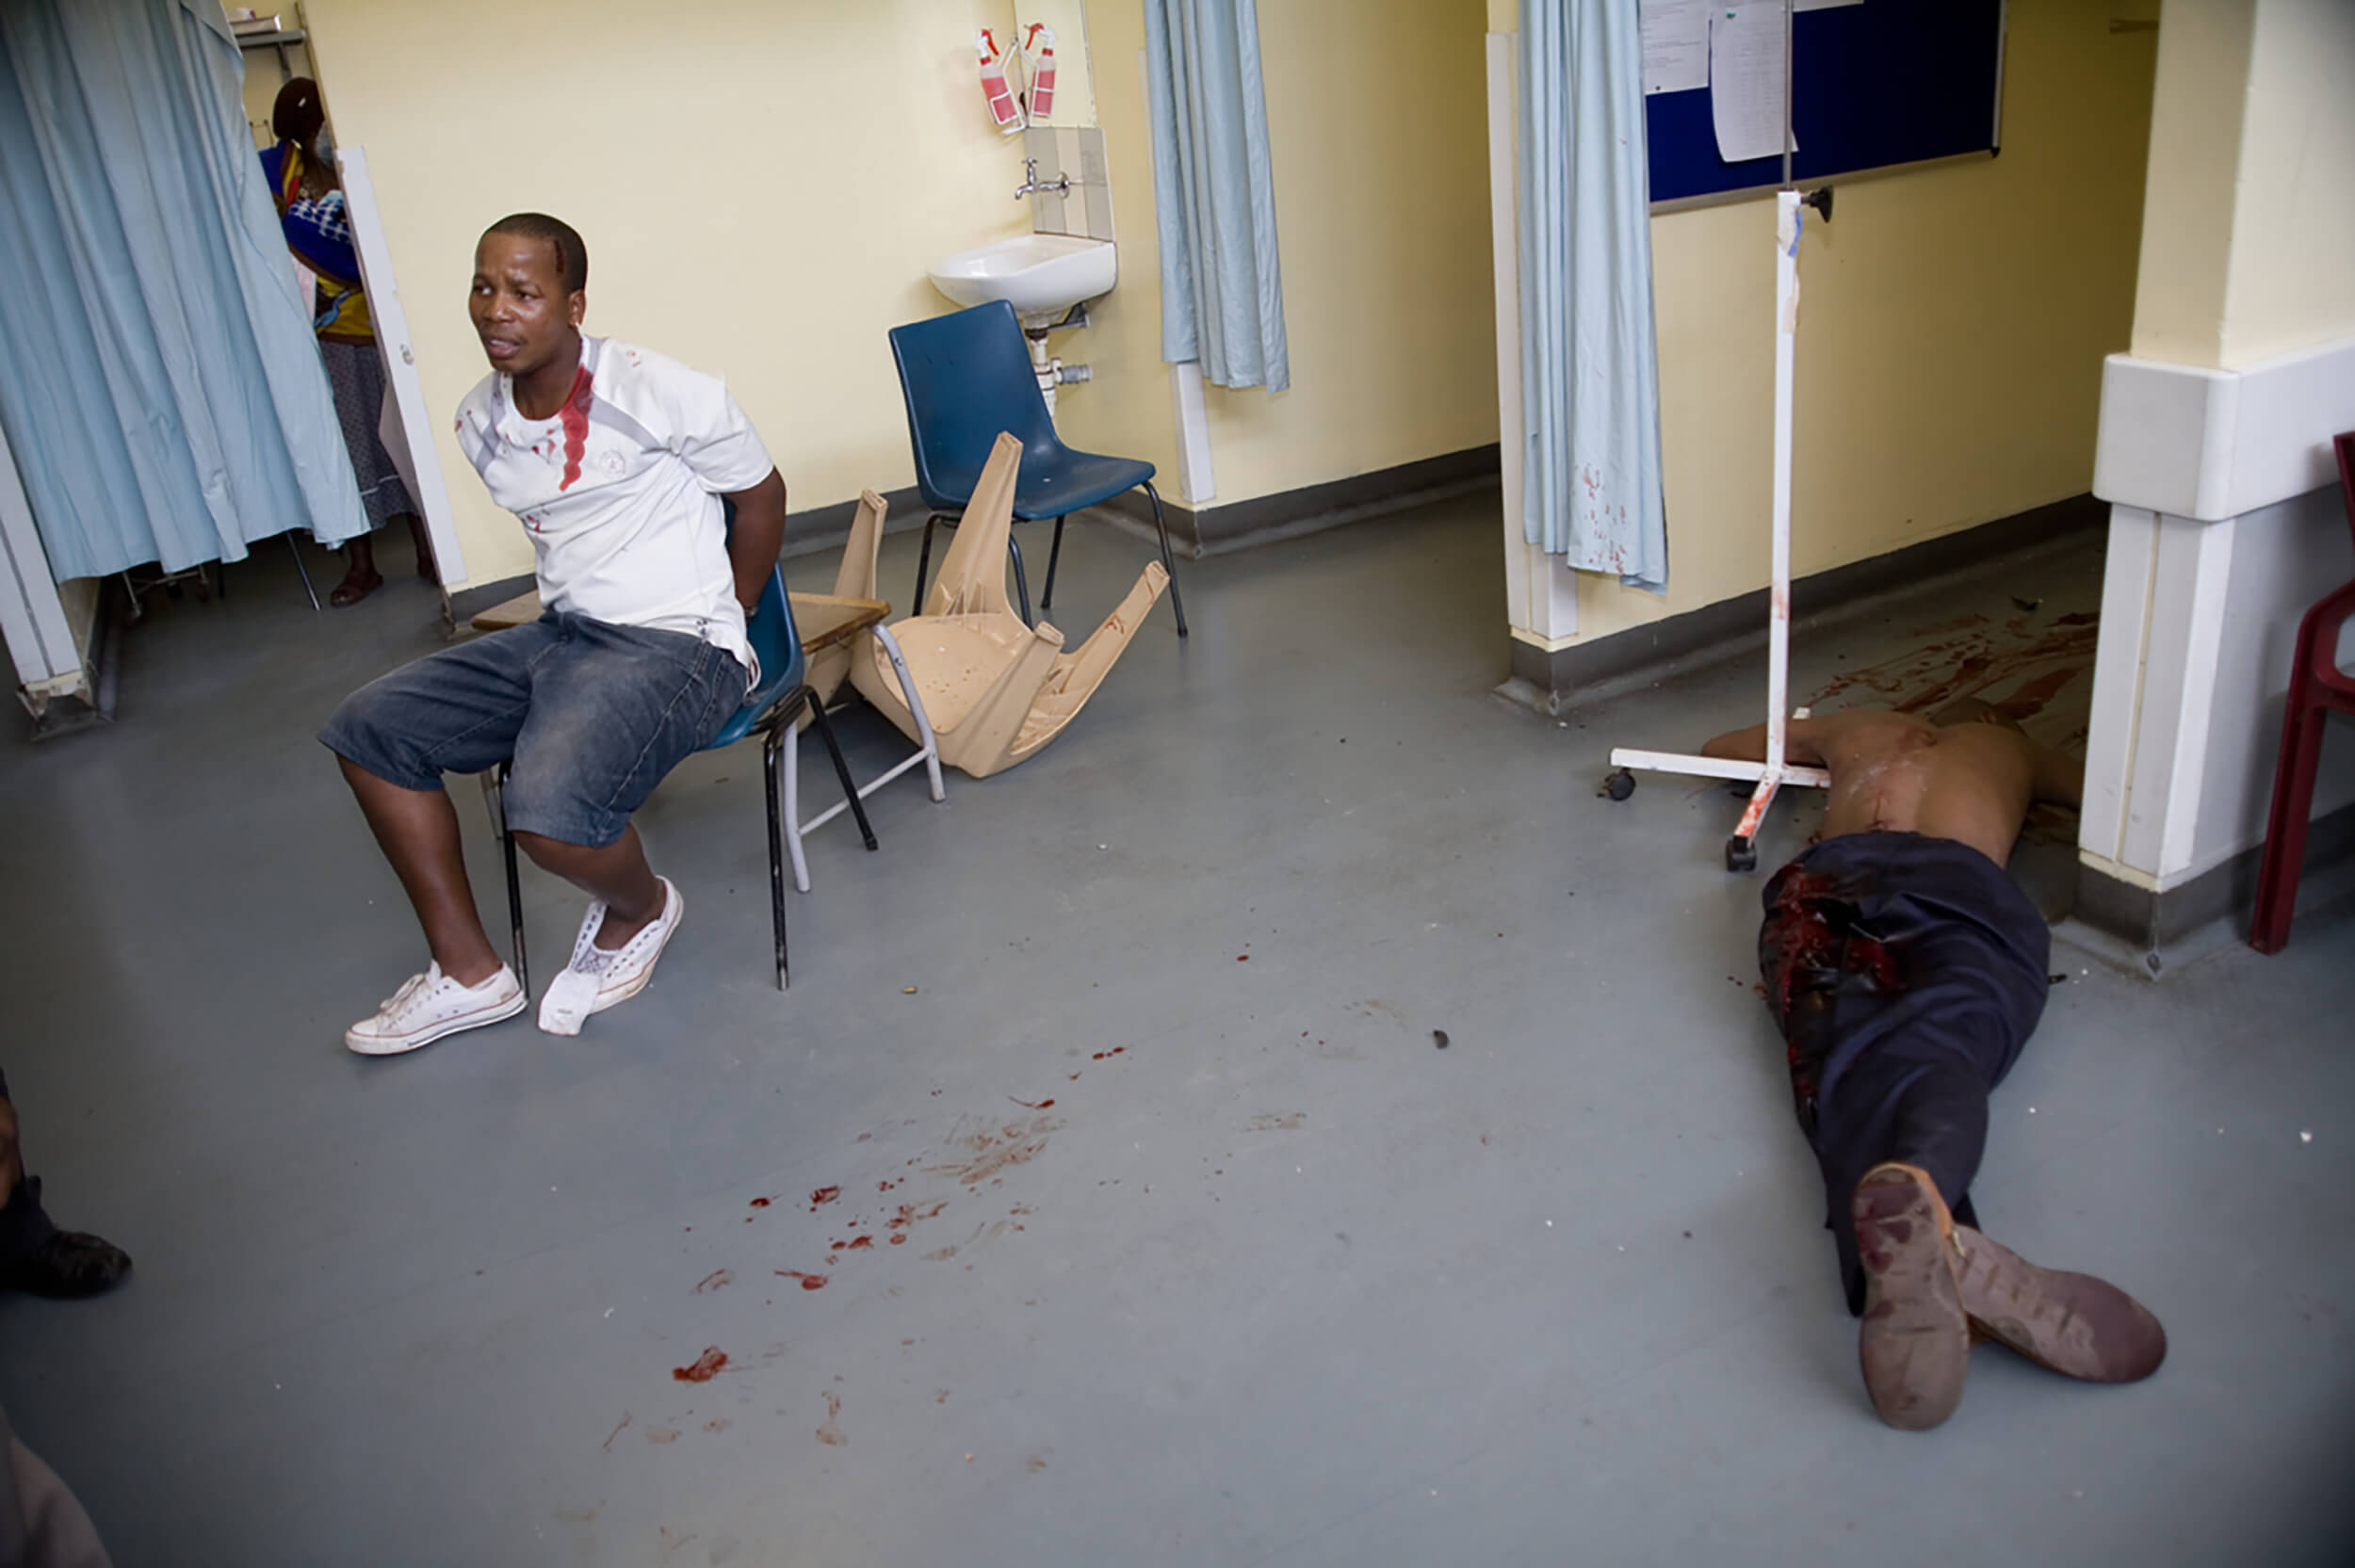 South Africa. Fifty people are dying to death every day in South Africa. Here in Alexandra Township in Johannesburg.